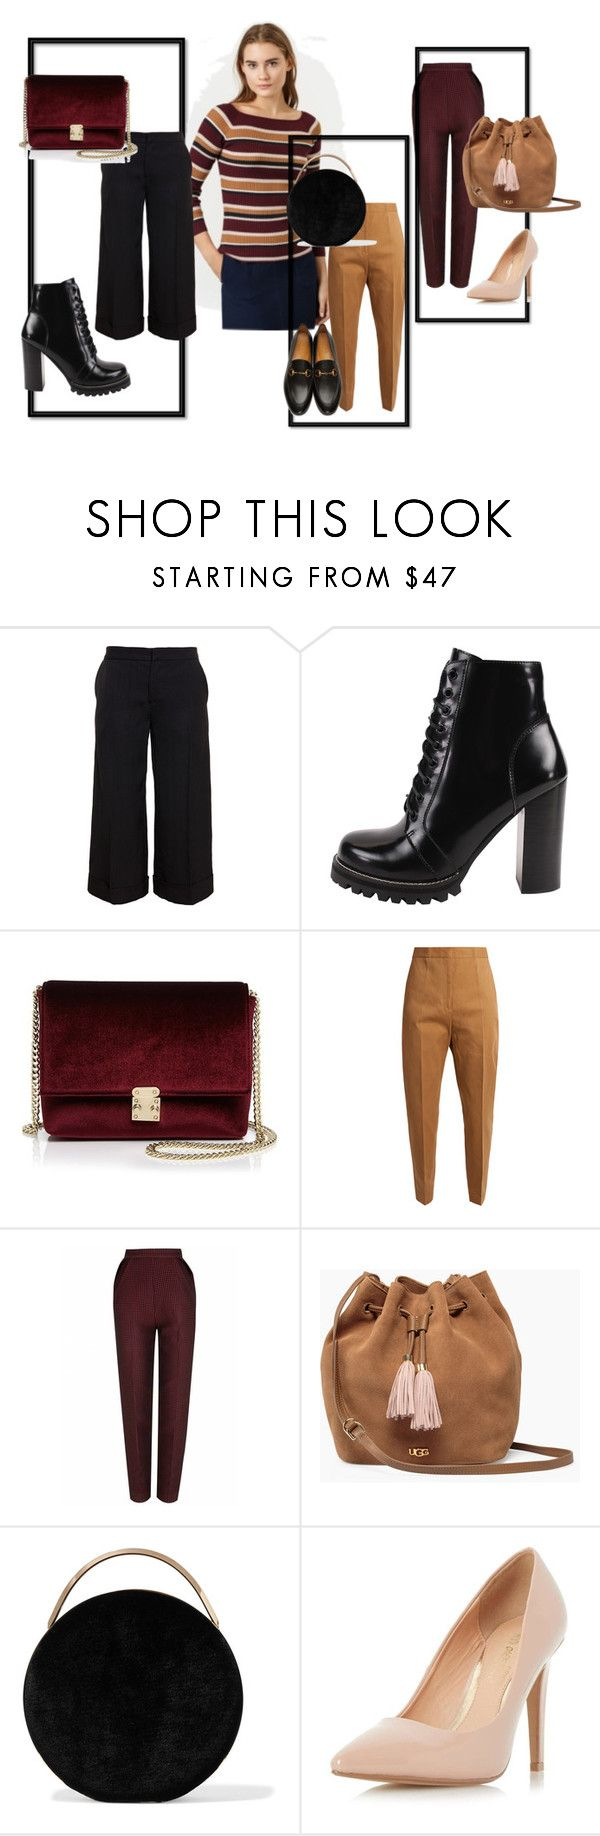 """Z"" by alena-mendesh on Polyvore featuring мода, Marni, Jeffrey Campbell, KC Jagger, Jil Sander, The 2nd Skin Co., UGG, Eddie Borgo, Dorothy Perkins и Gucci"